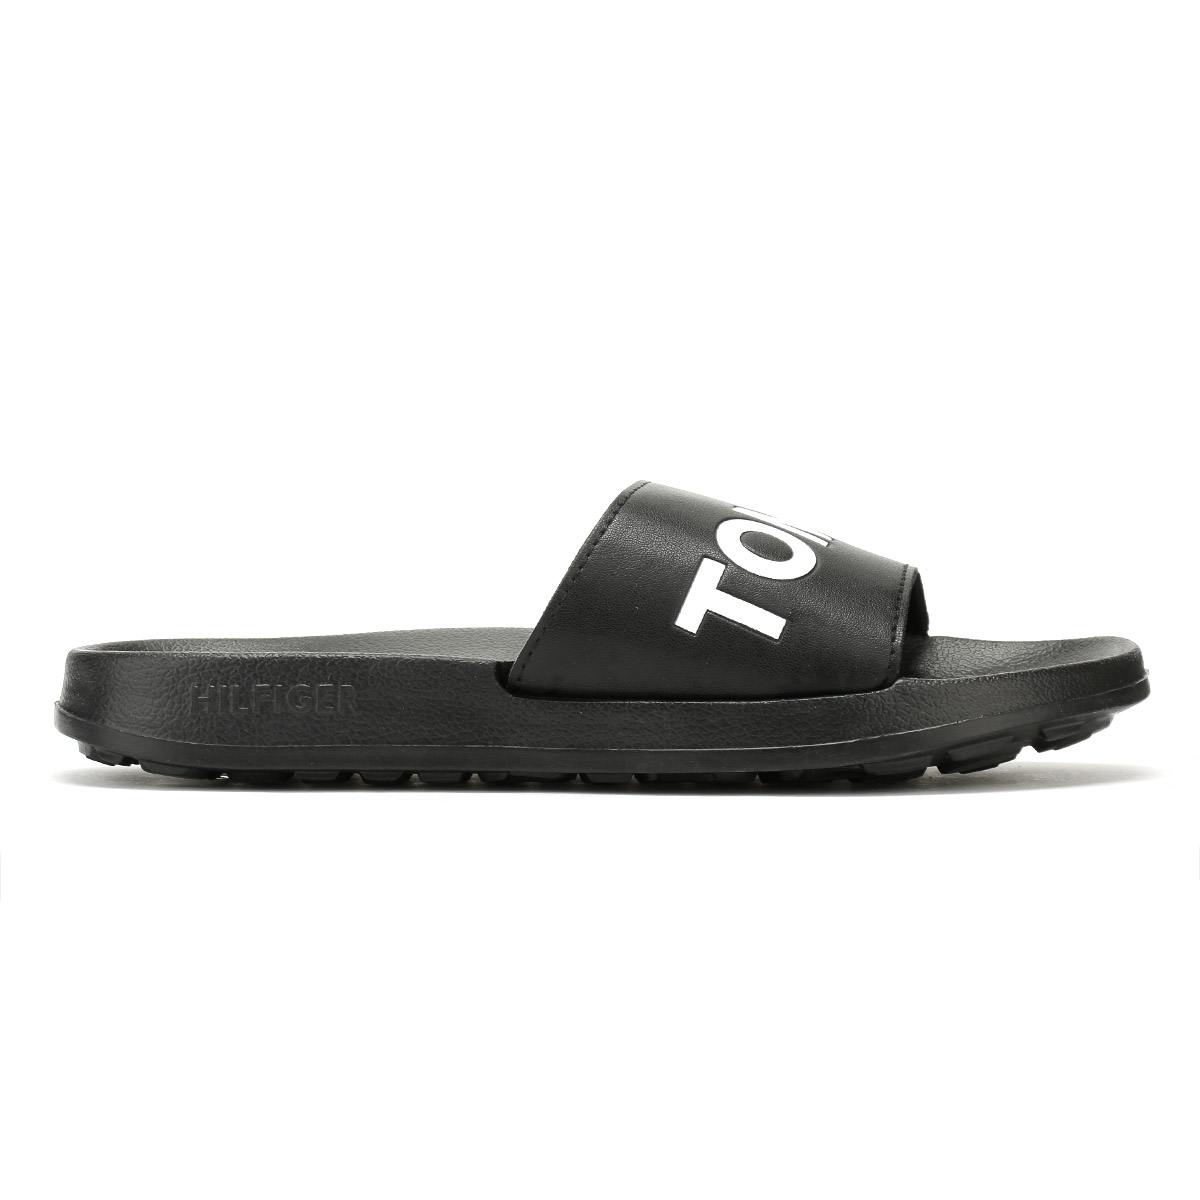 1ce5d6274 Tommy Hilfiger Womens Slides Black Tommy Jeans Pool Summer Beach ...